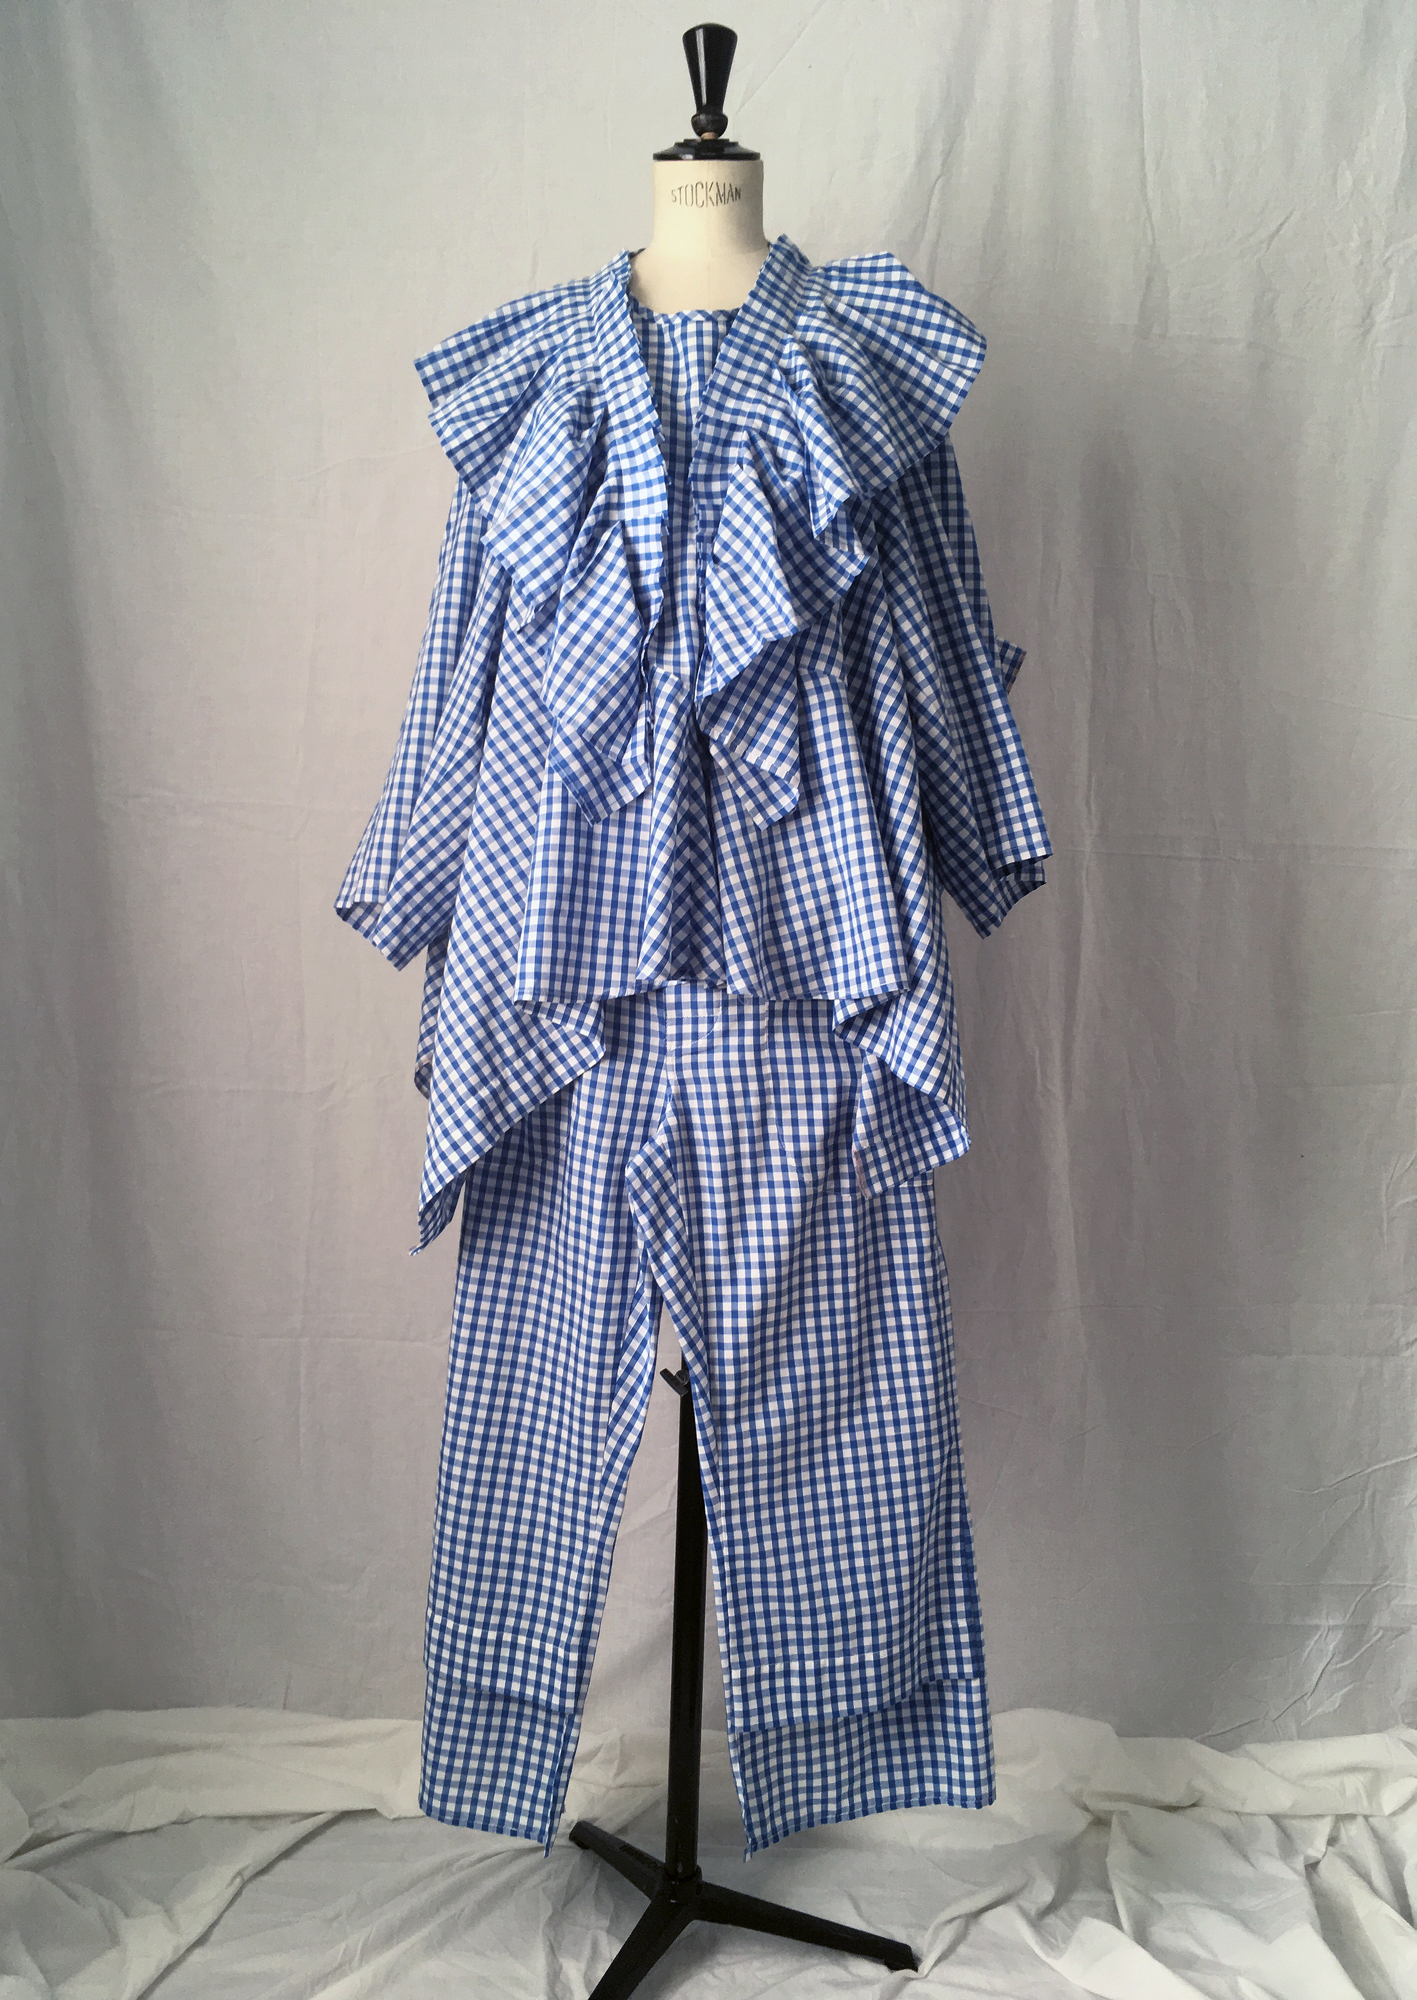 DRESS LTD Dorothy's Pyjamas Set 2: FLAT PACK HALF DRESS & FLAT PACK PYJAMA Trousers - #dressltd